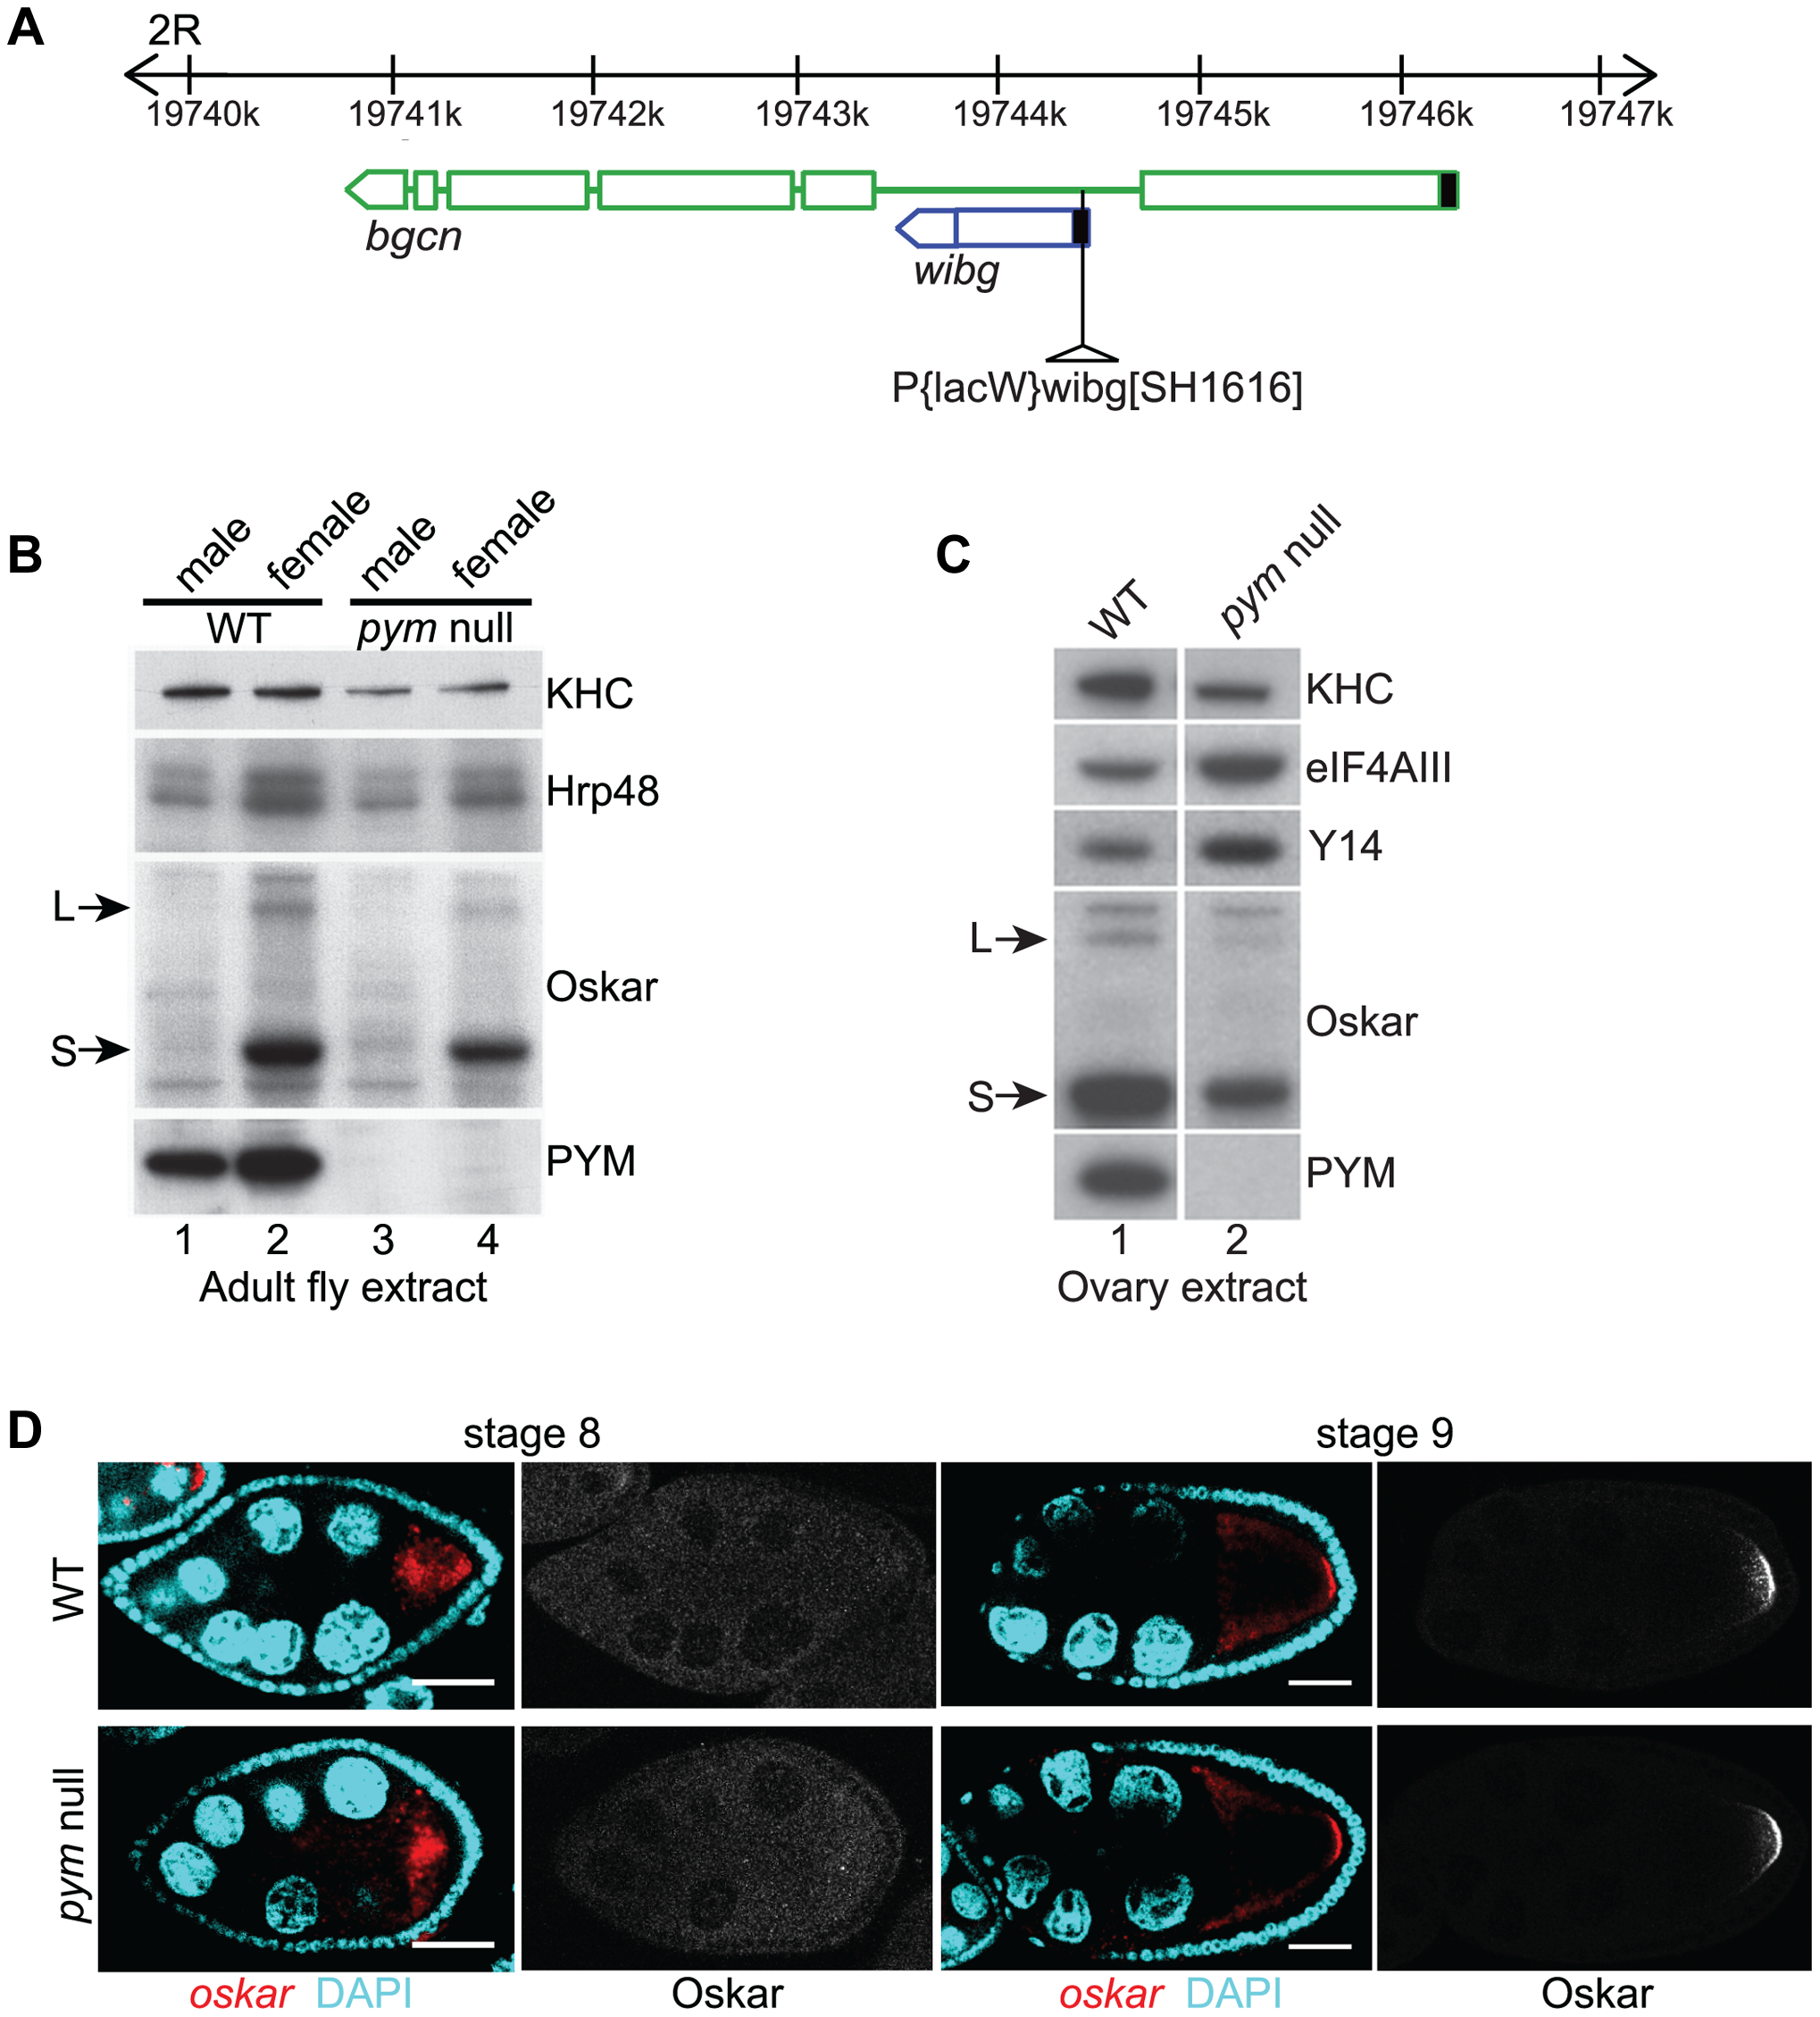 PYM is a non-essential gene in <i>Drosophila</i>.